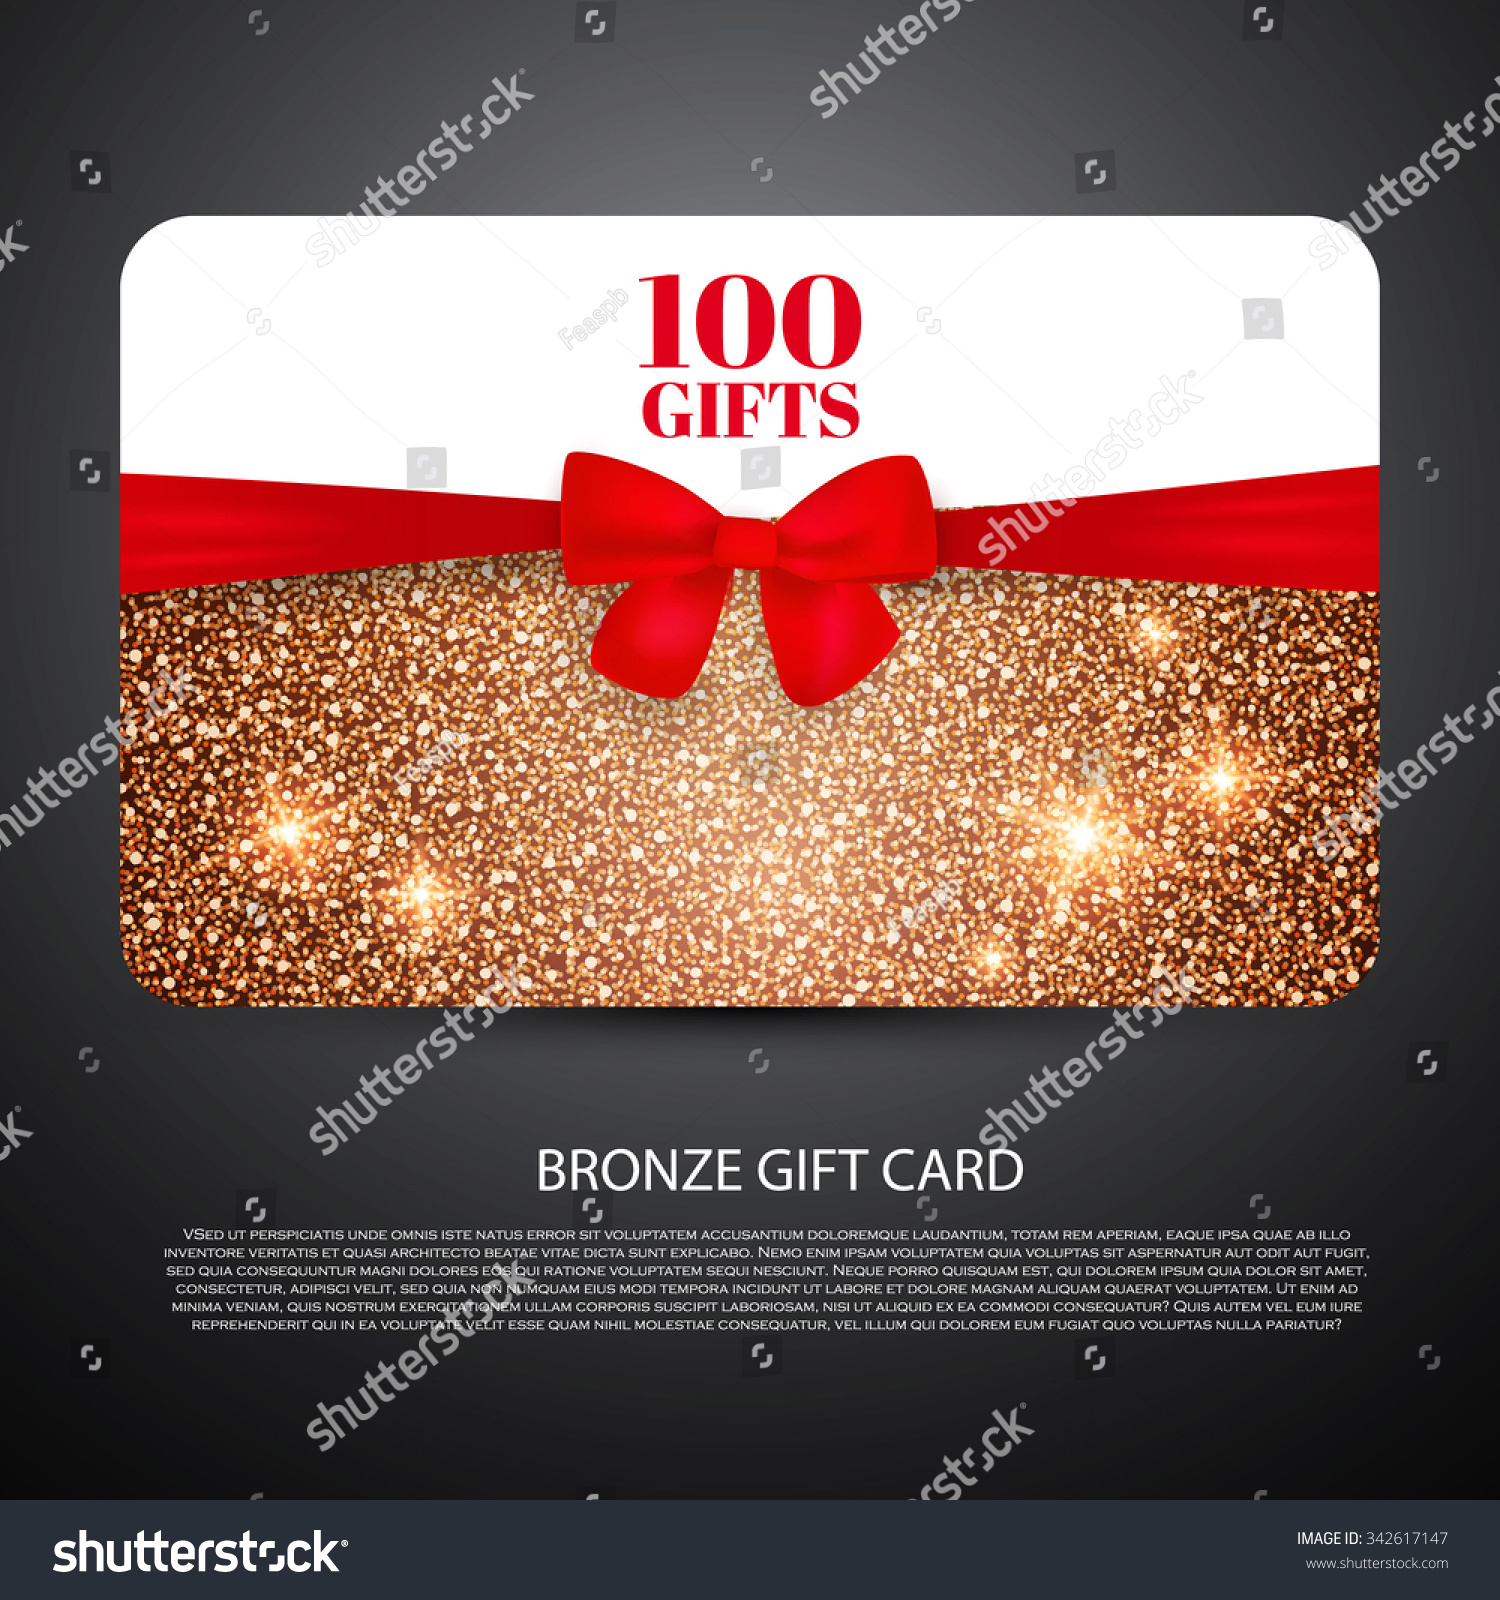 bronze gift coupon gift card discount stock vector royalty free